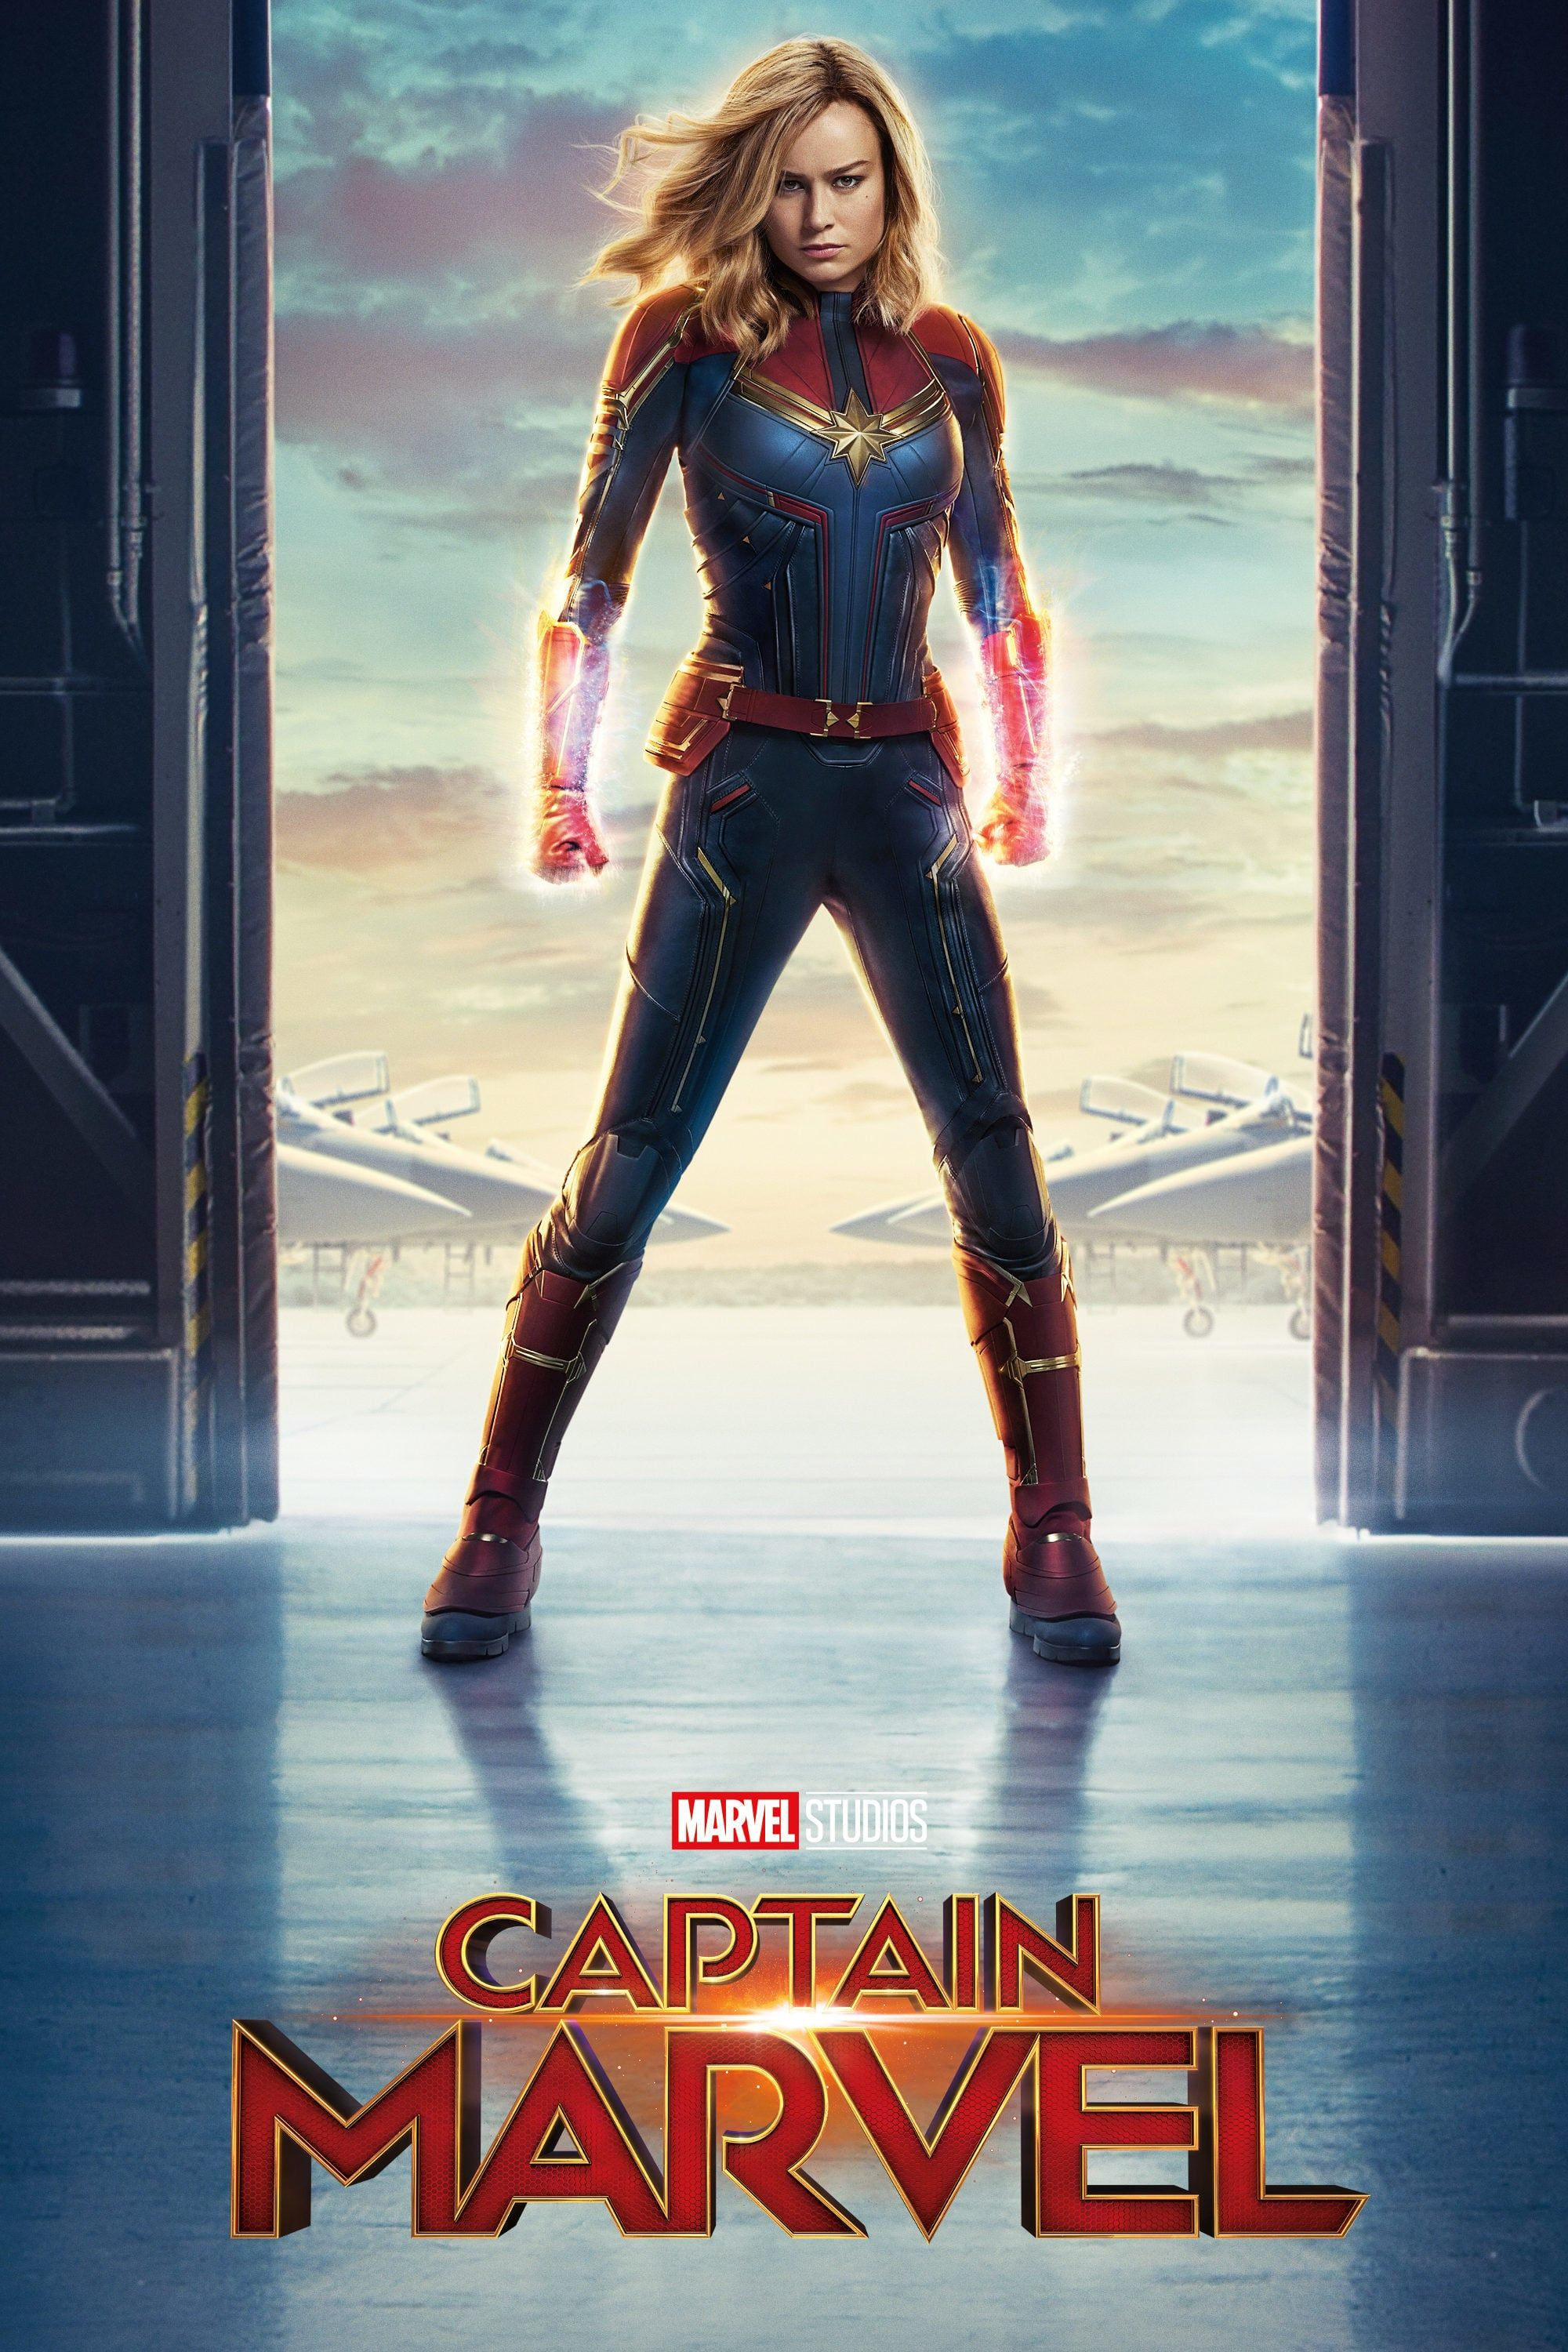 Eng Sub Captain Marvel Full Movie Maxhd Online 2019 Free Download 720p 1080p Capitana Marvel Películas Completas Marvel